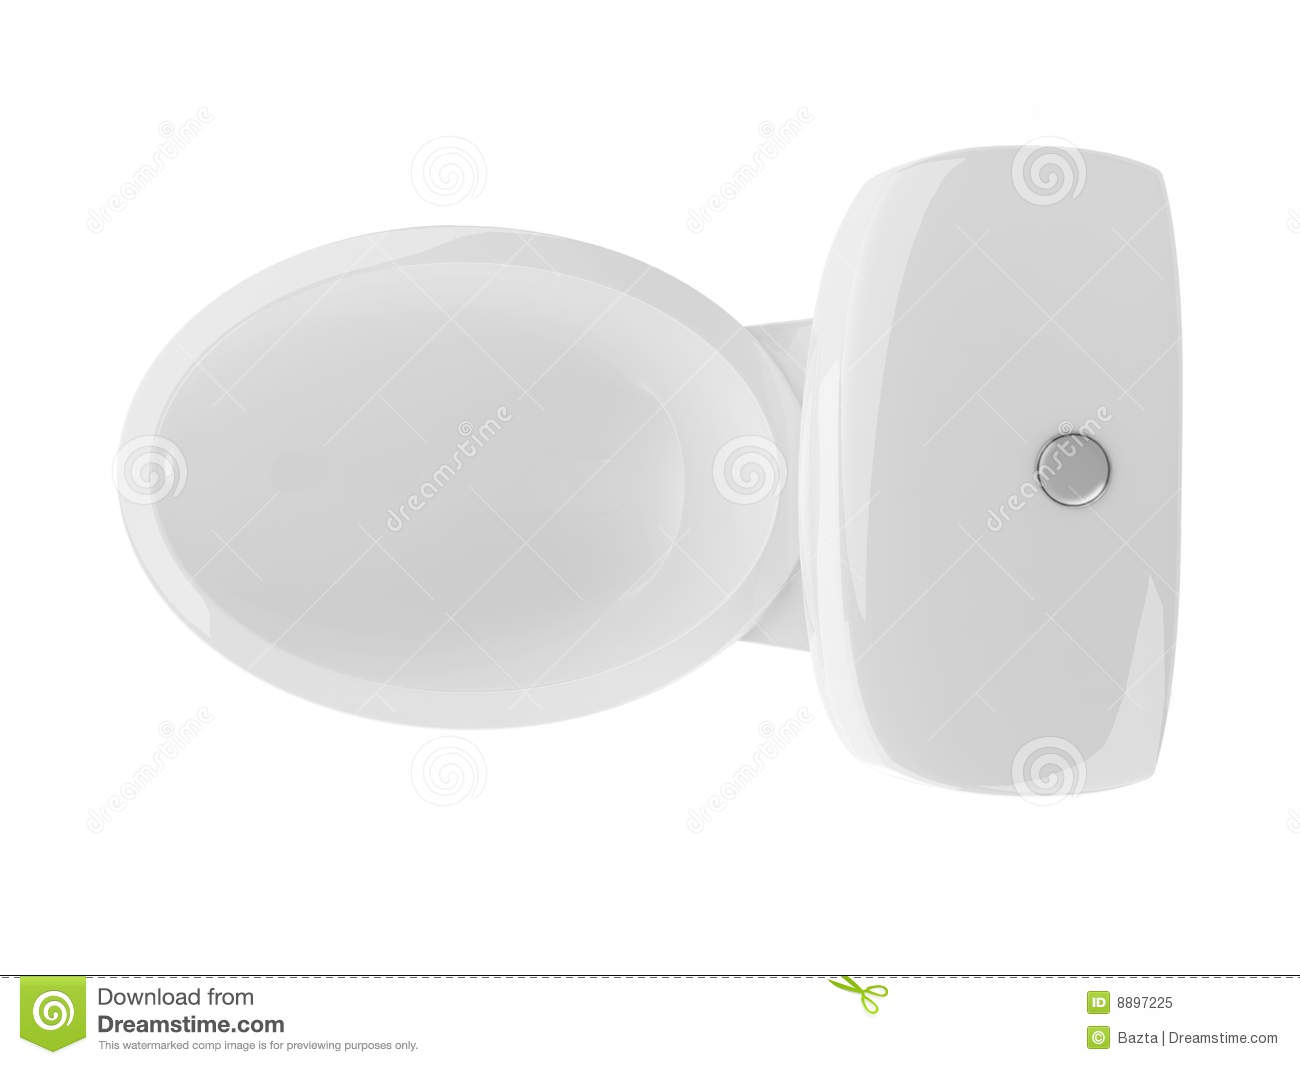 Royalty Free Stock Photo  Download Toilet Top View. Toilet Top View Clean Royalty Free Stock Photo   Image  8897225